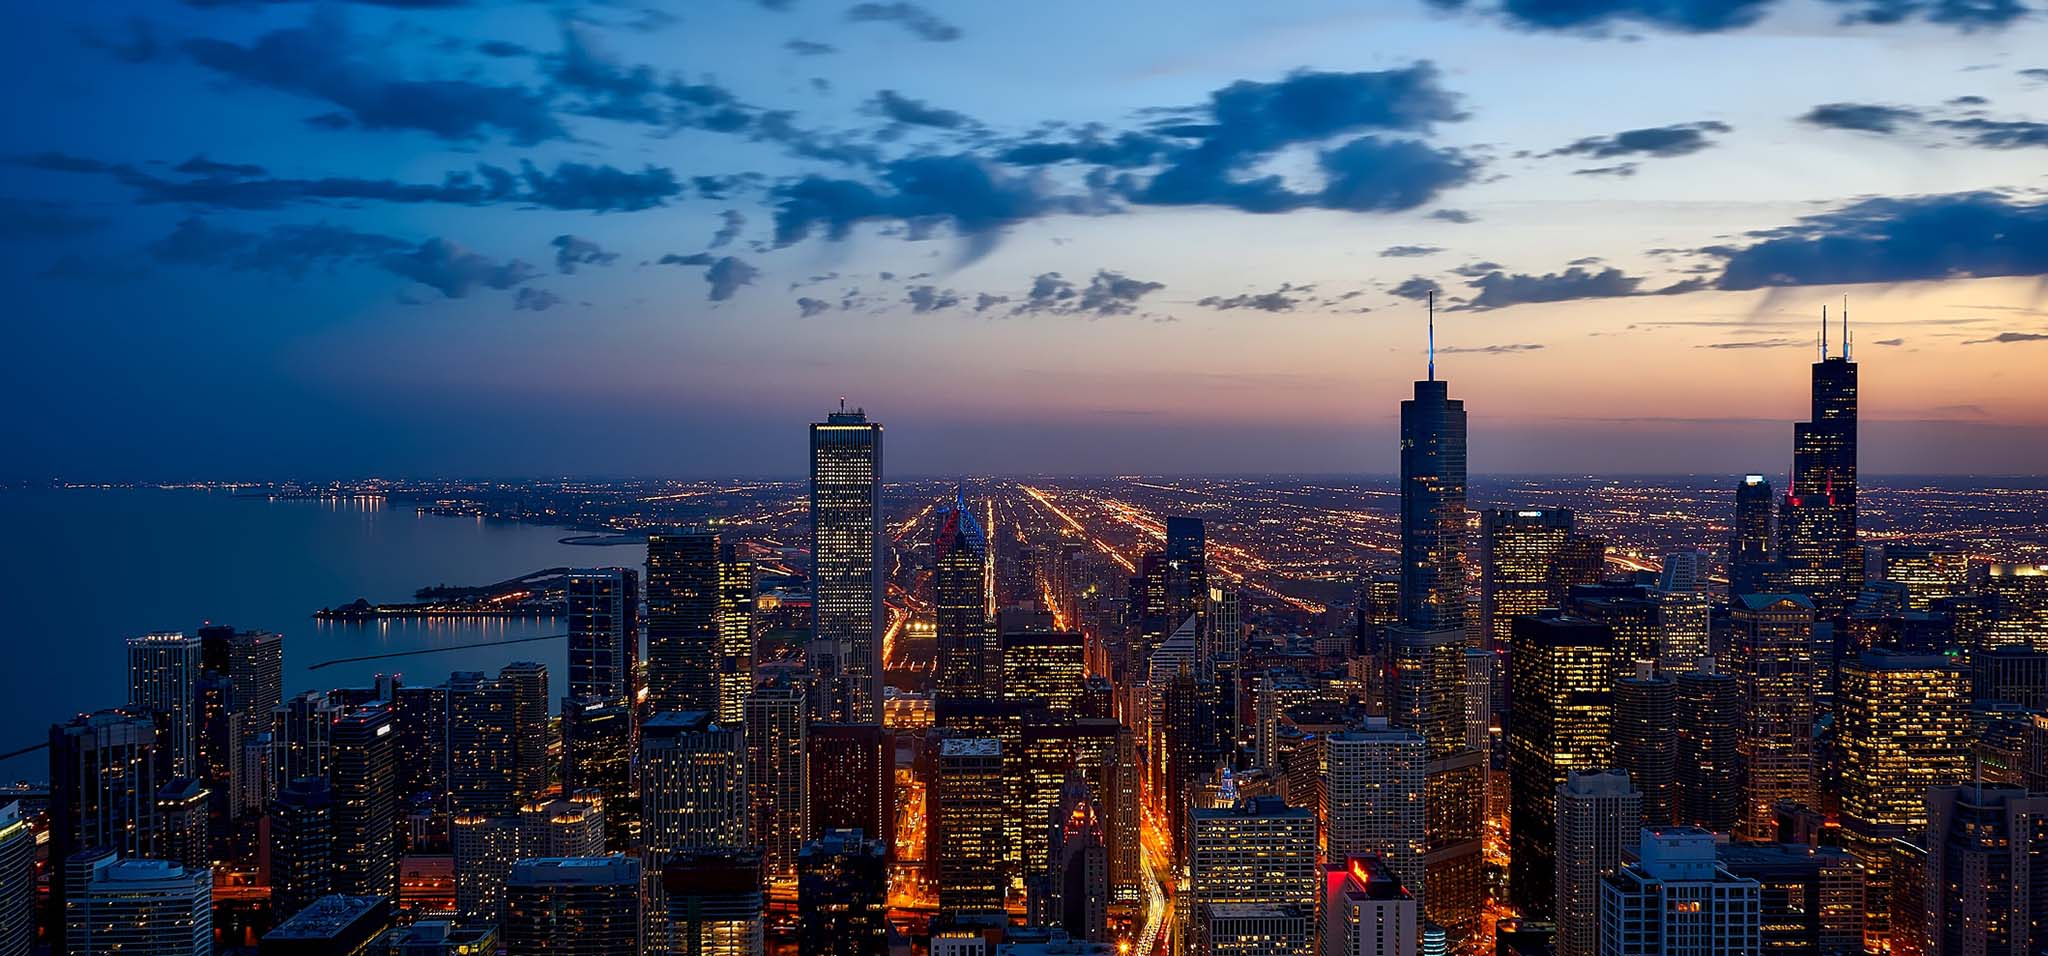 Meditate in Chicago on Insight Timer